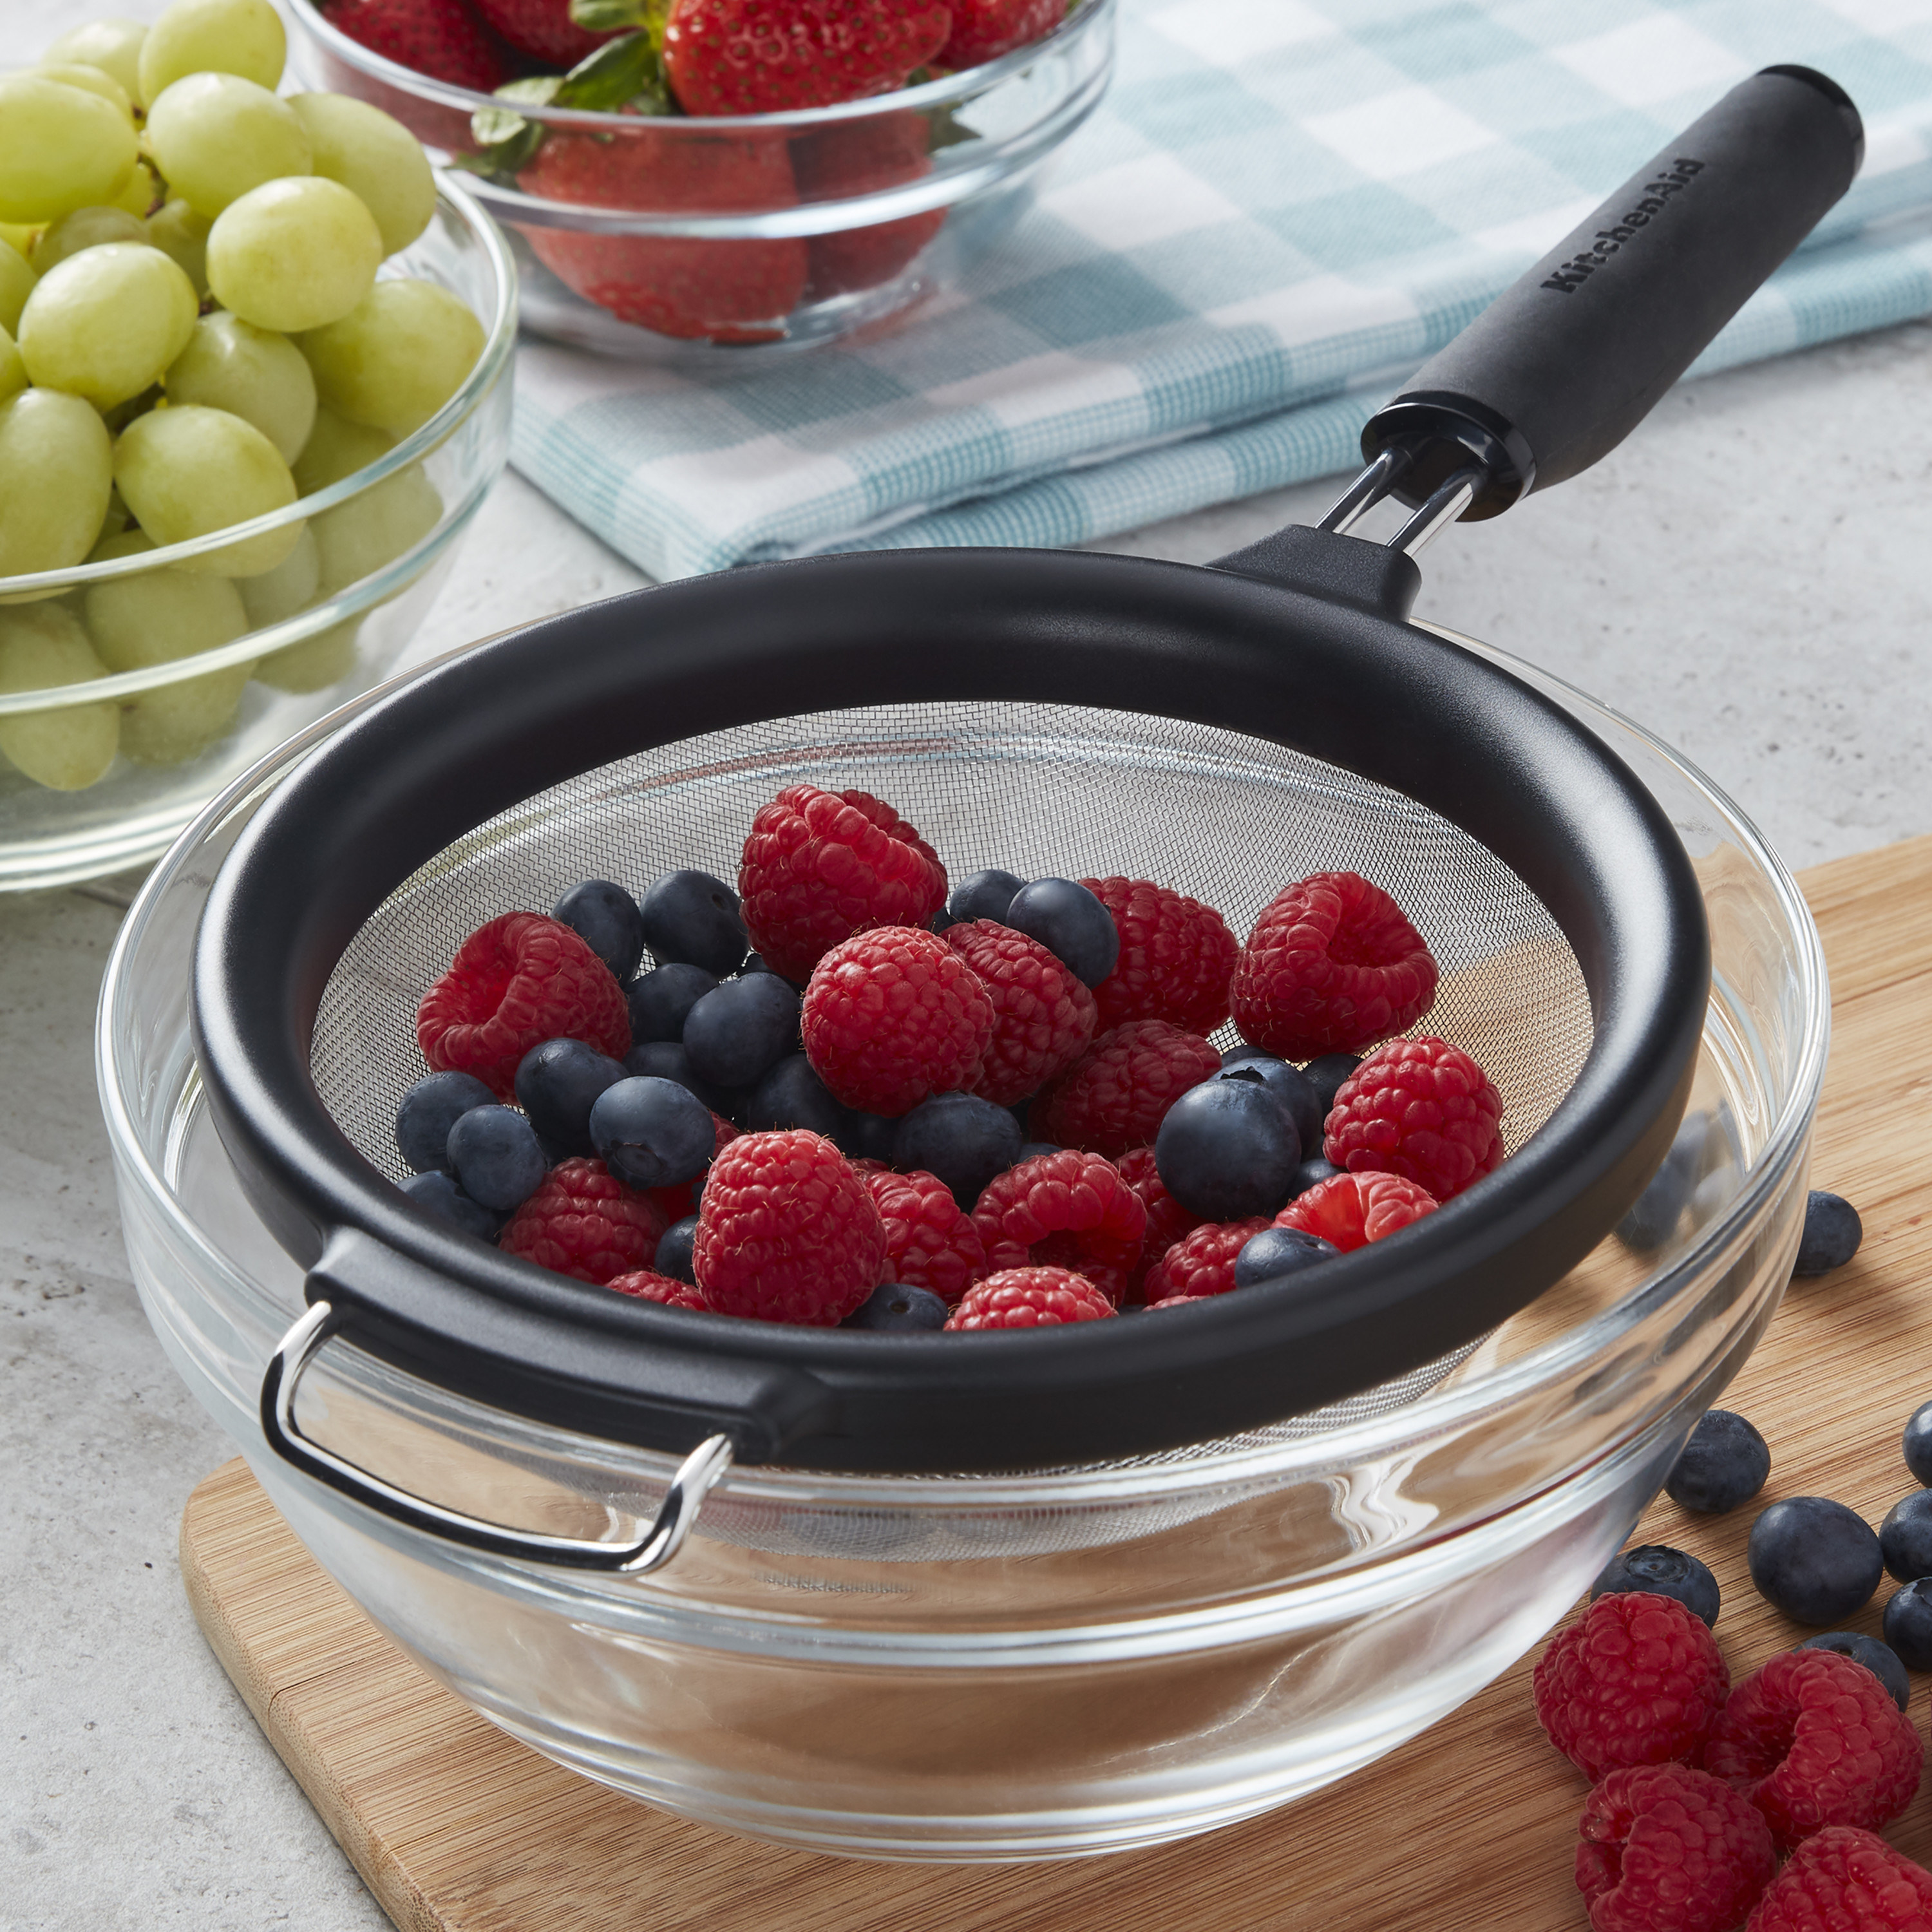 stainless steel mesh strainer with a handle, with fresh berries inside